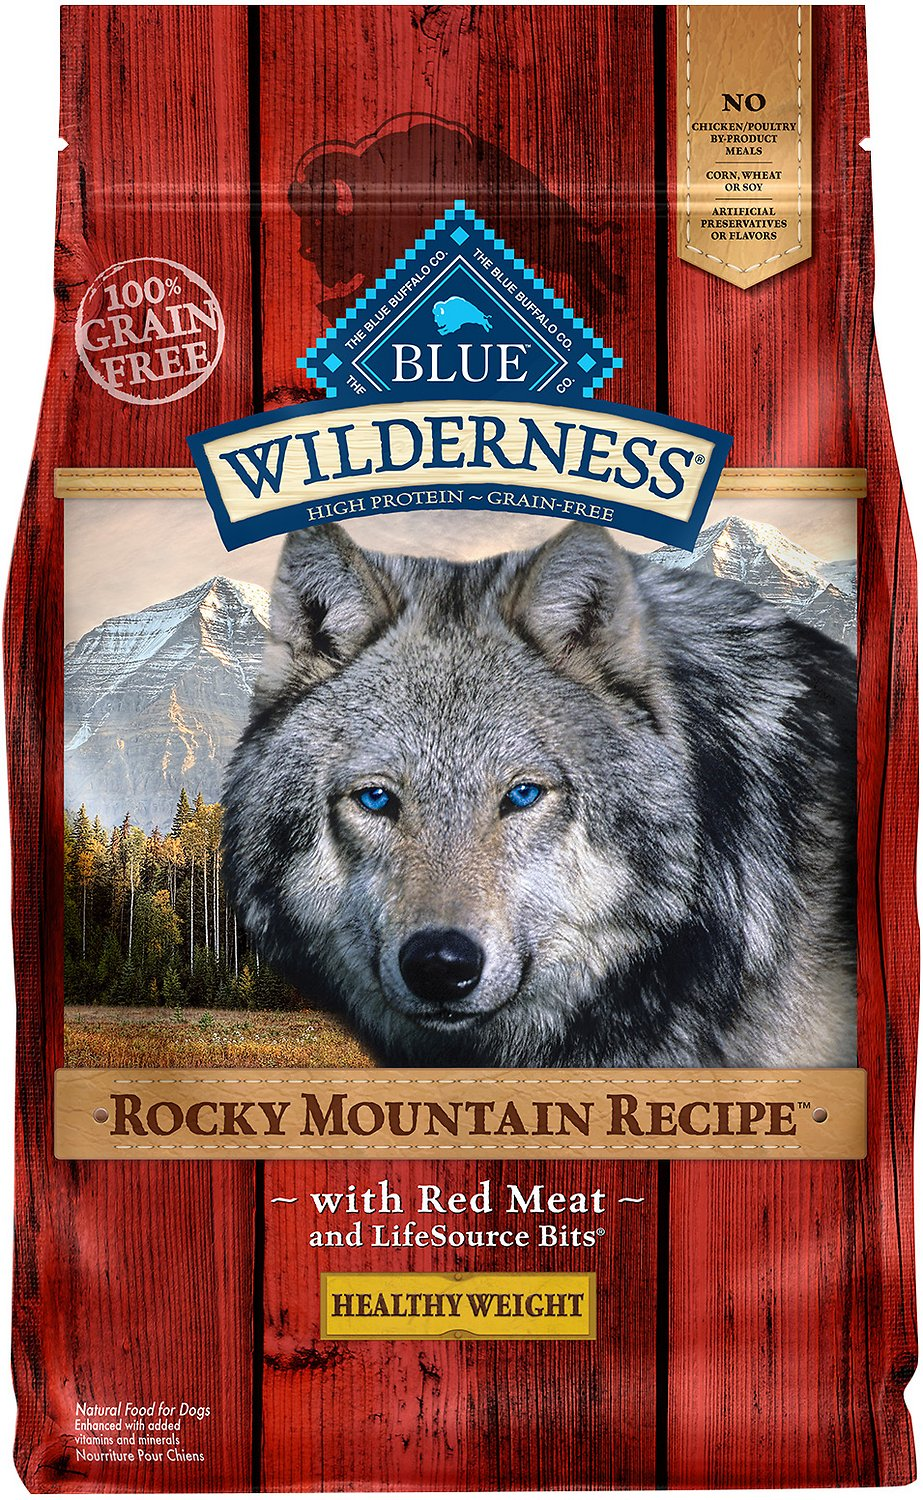 Blue Buffalo Wilderness Rocky Mountain Recipe with Red Meat Healthy Weight Grain-Free Dry Dog Food Image